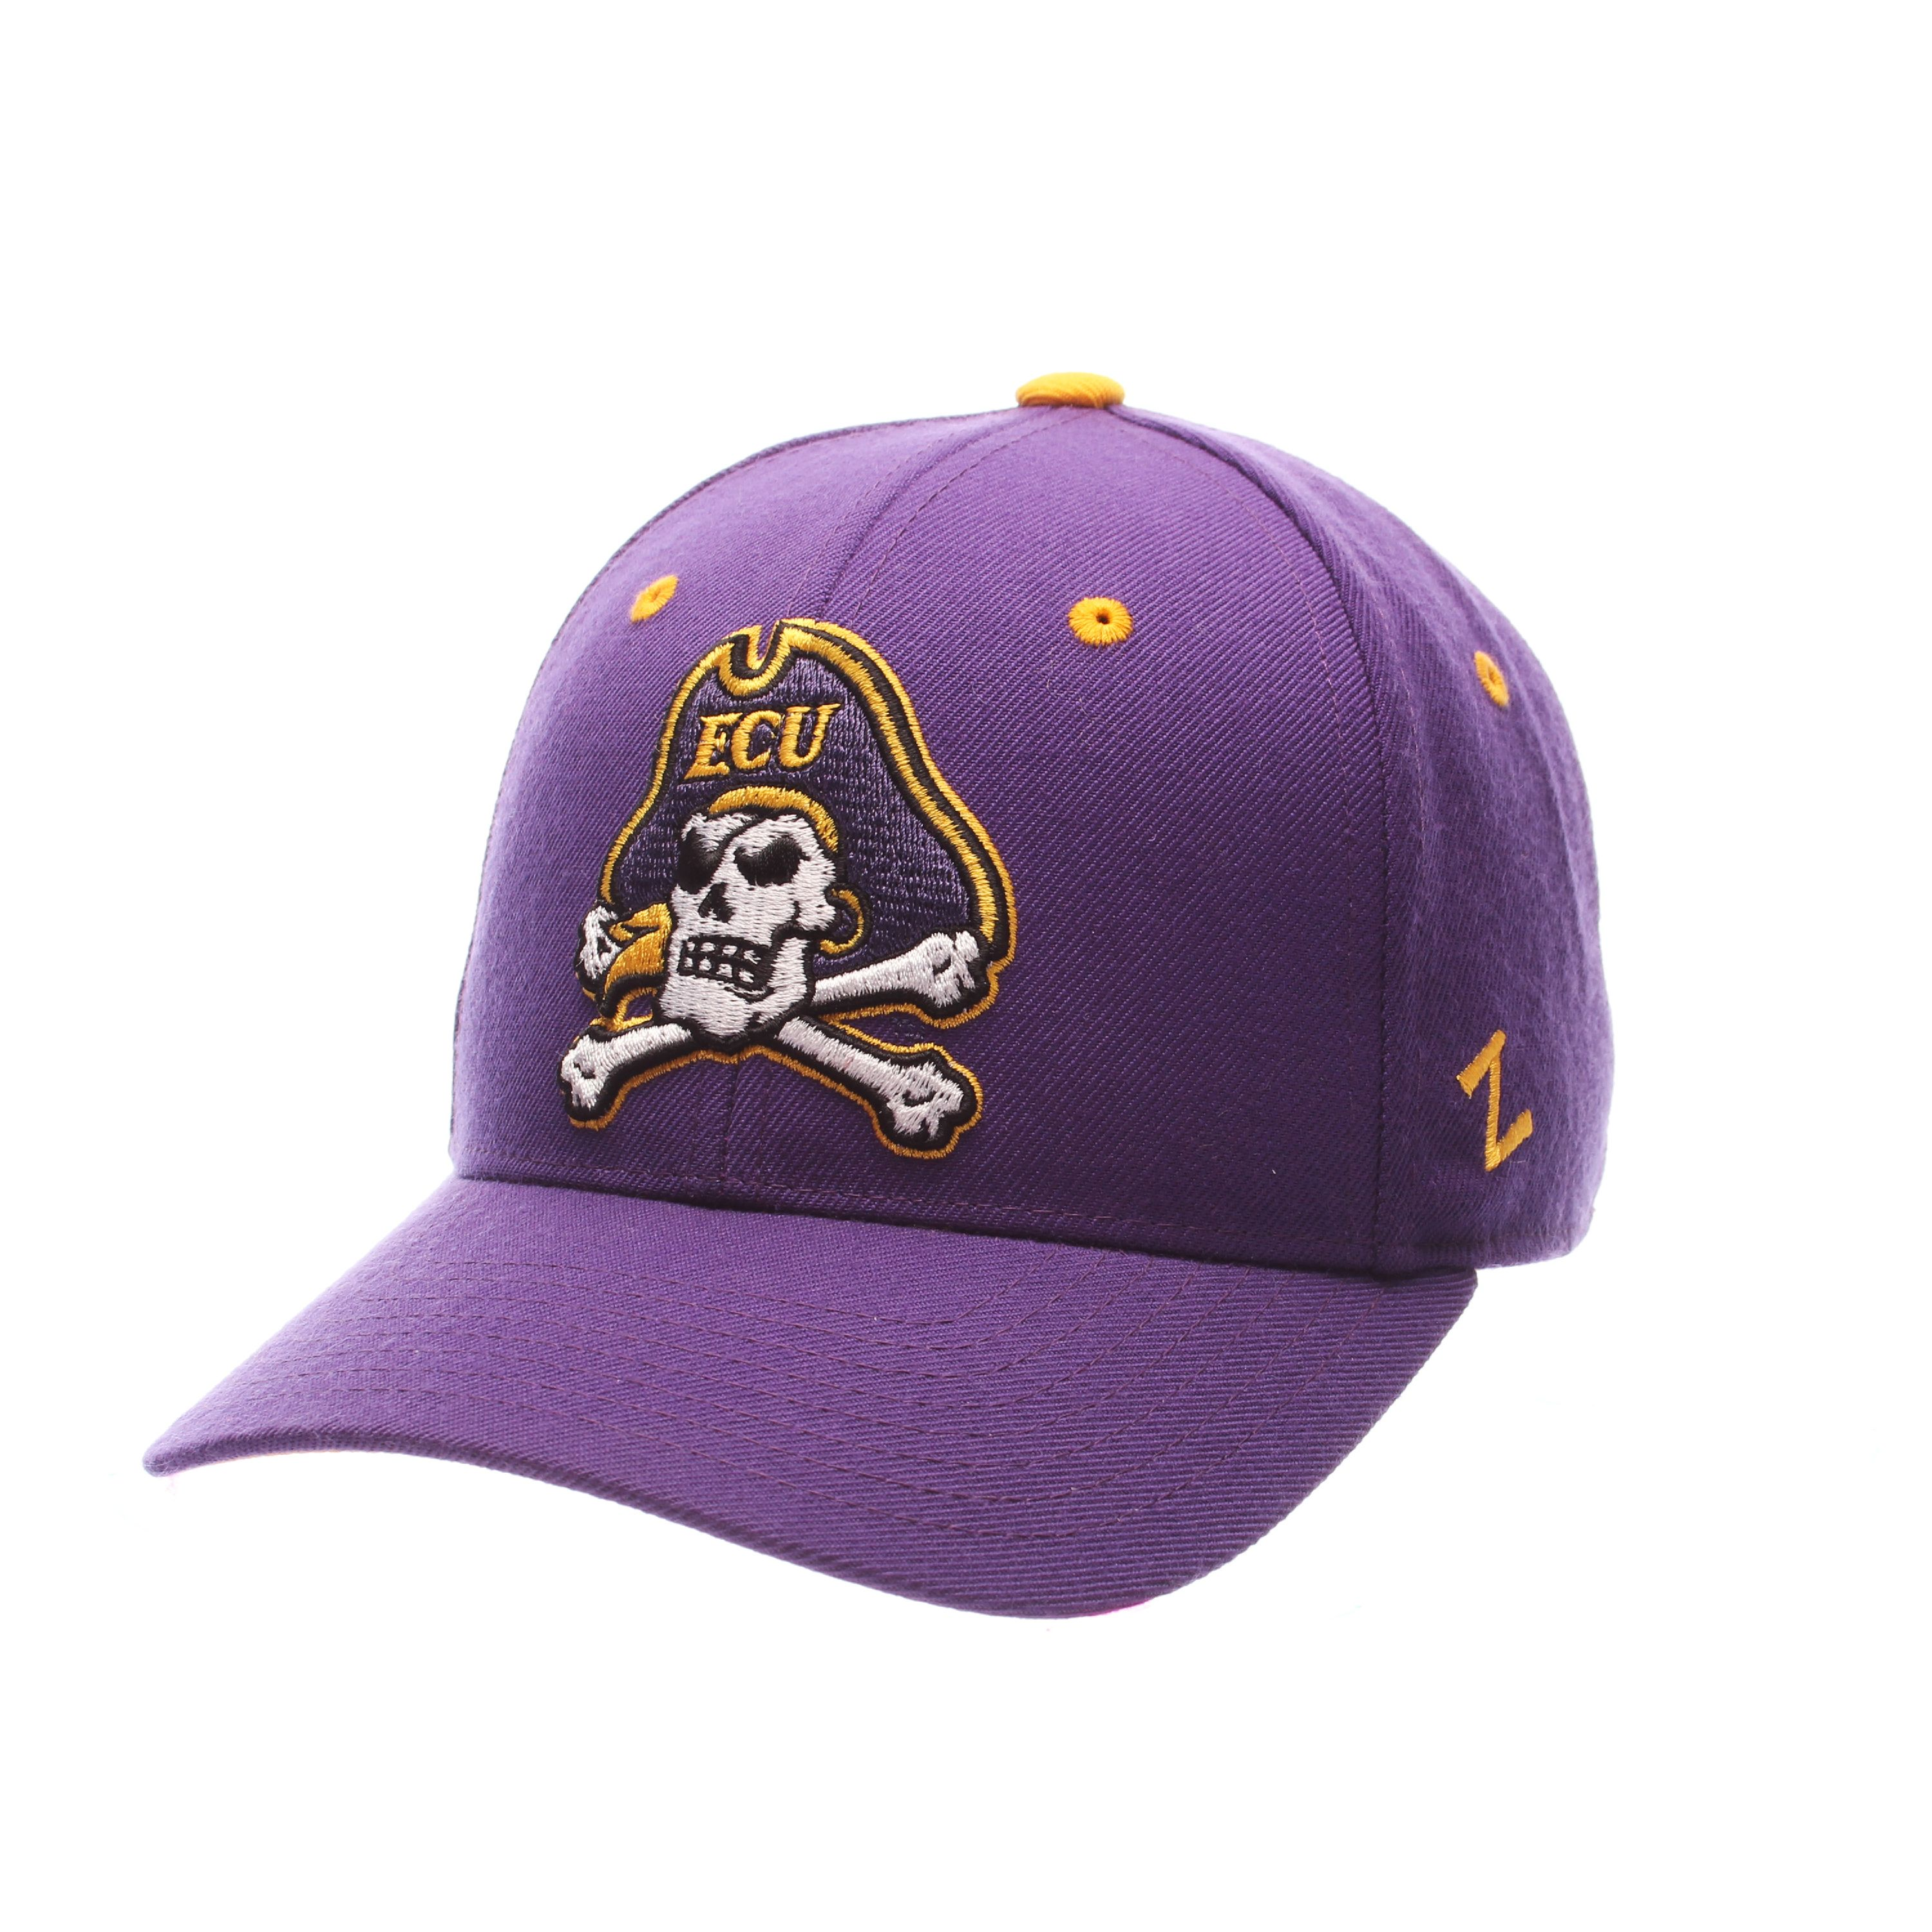 East Carolina Pirates DHS Fitted Hat (Purple)